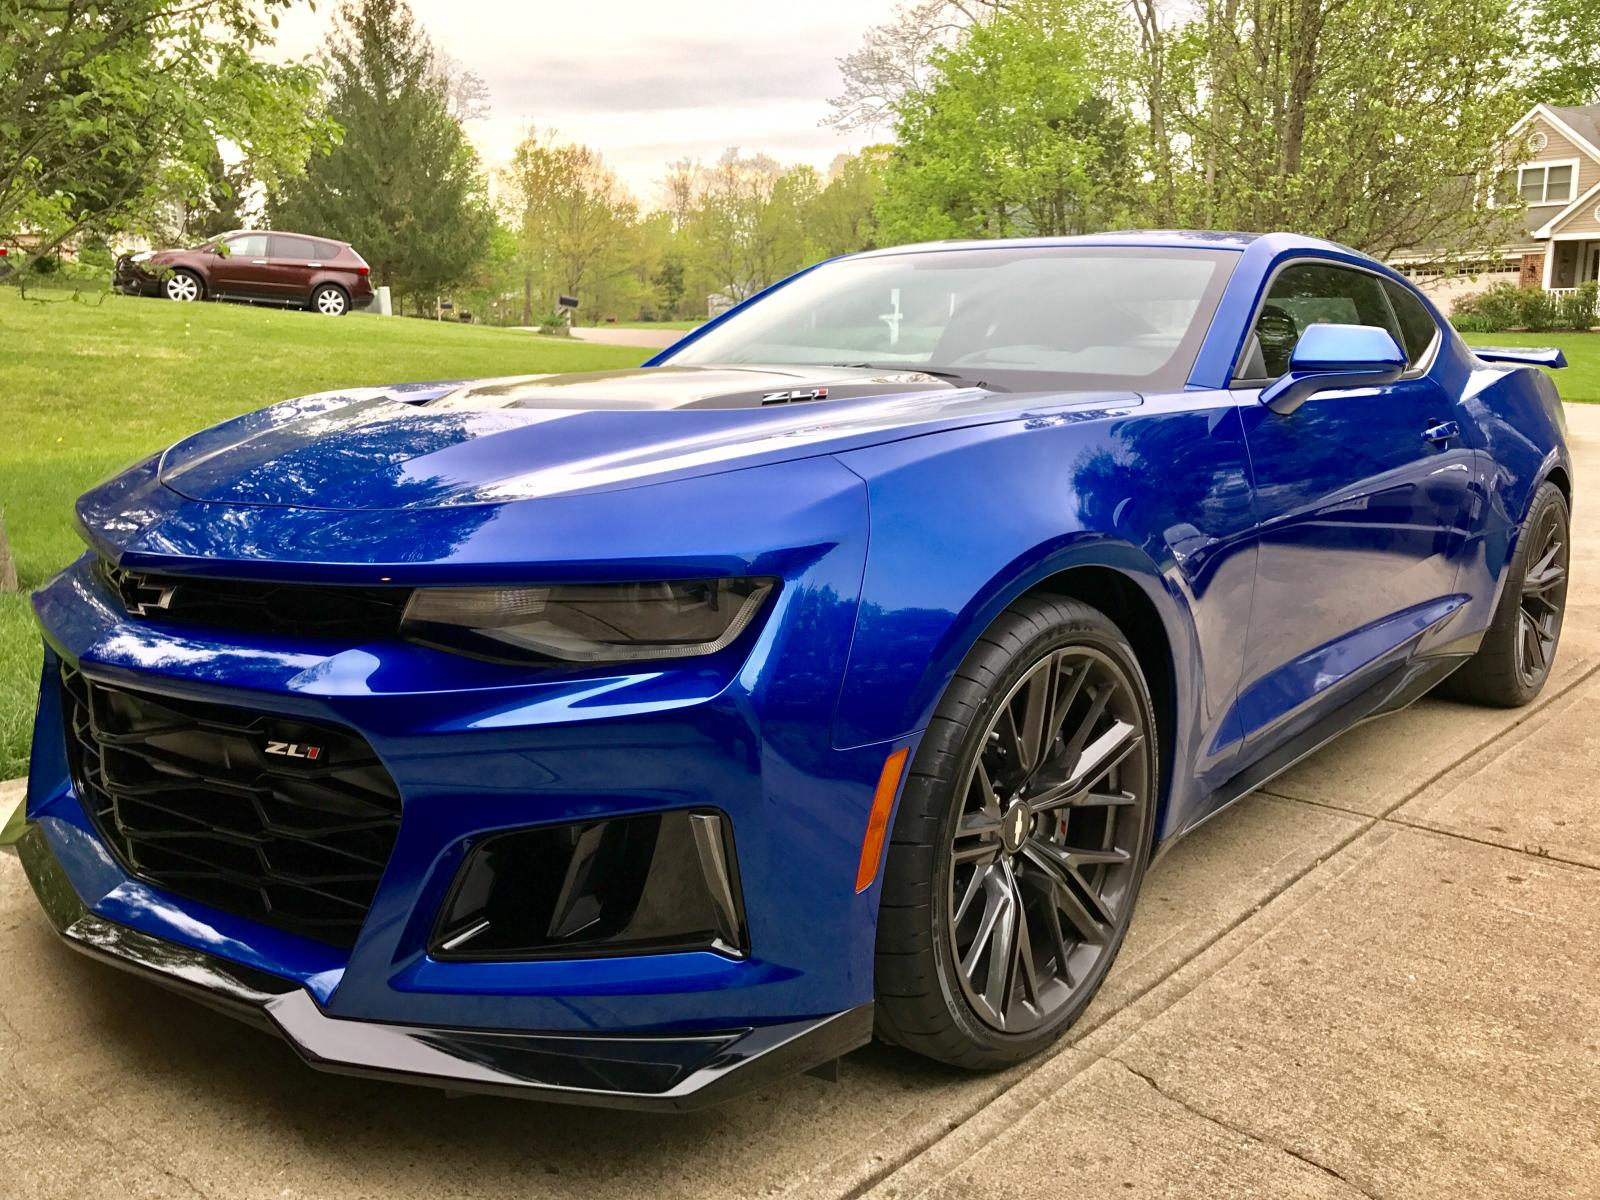 2017 zl1 camaro coupe only 161 miles 6 speed manual hyper blue metallic camaro6. Black Bedroom Furniture Sets. Home Design Ideas